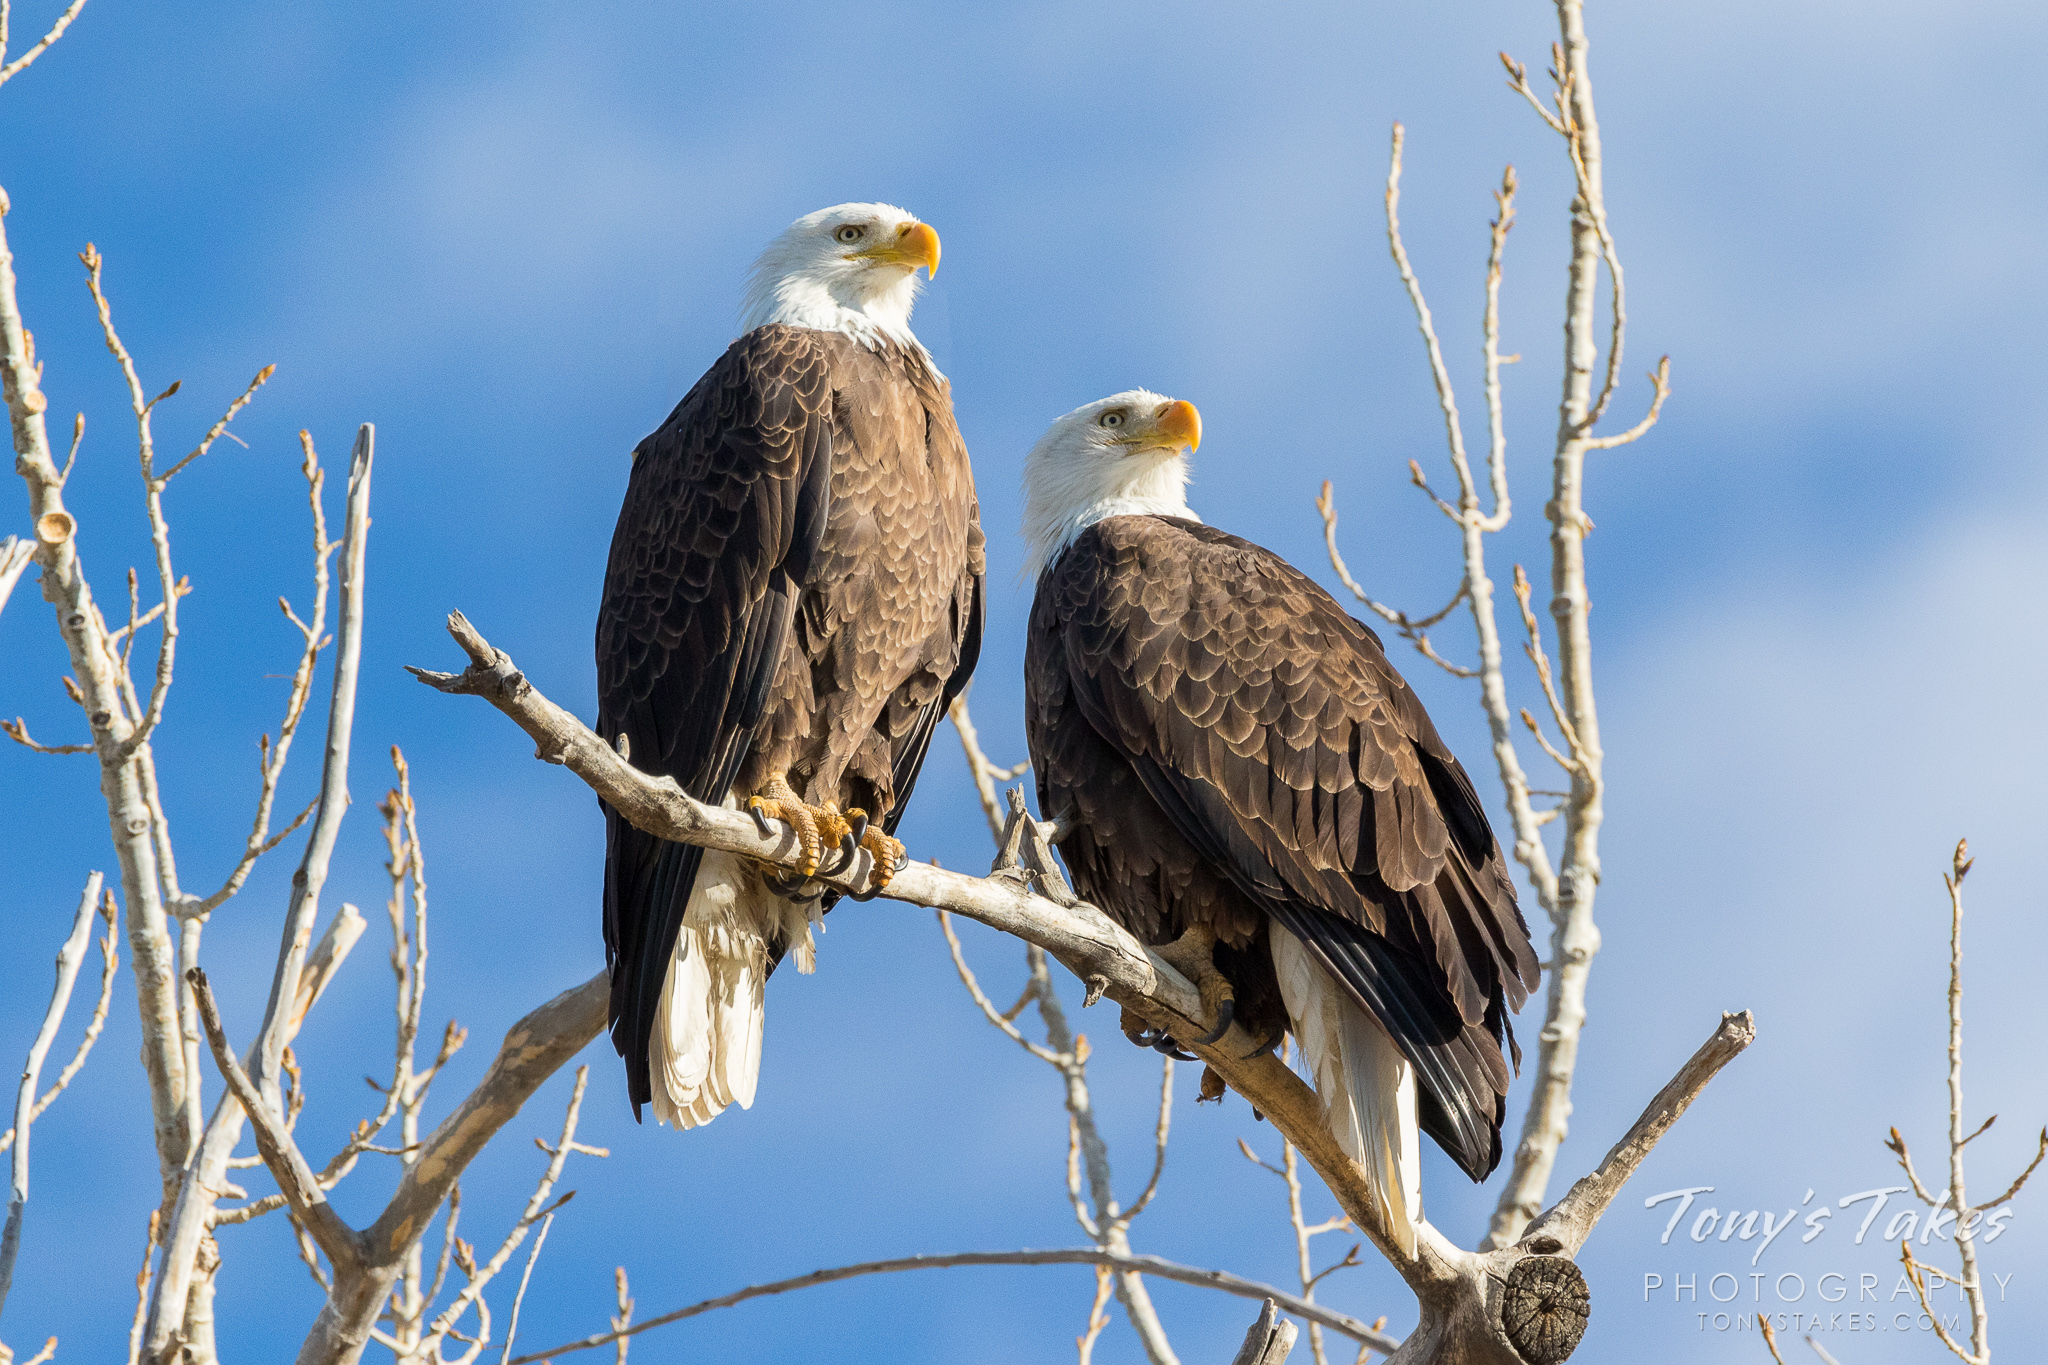 A mated pair of bald eagles southwest of Denver, Colorado in February 2017. The female (right) recently passed away in the blizzard that struck the Colorado Front Range. (© Tony's Takes)